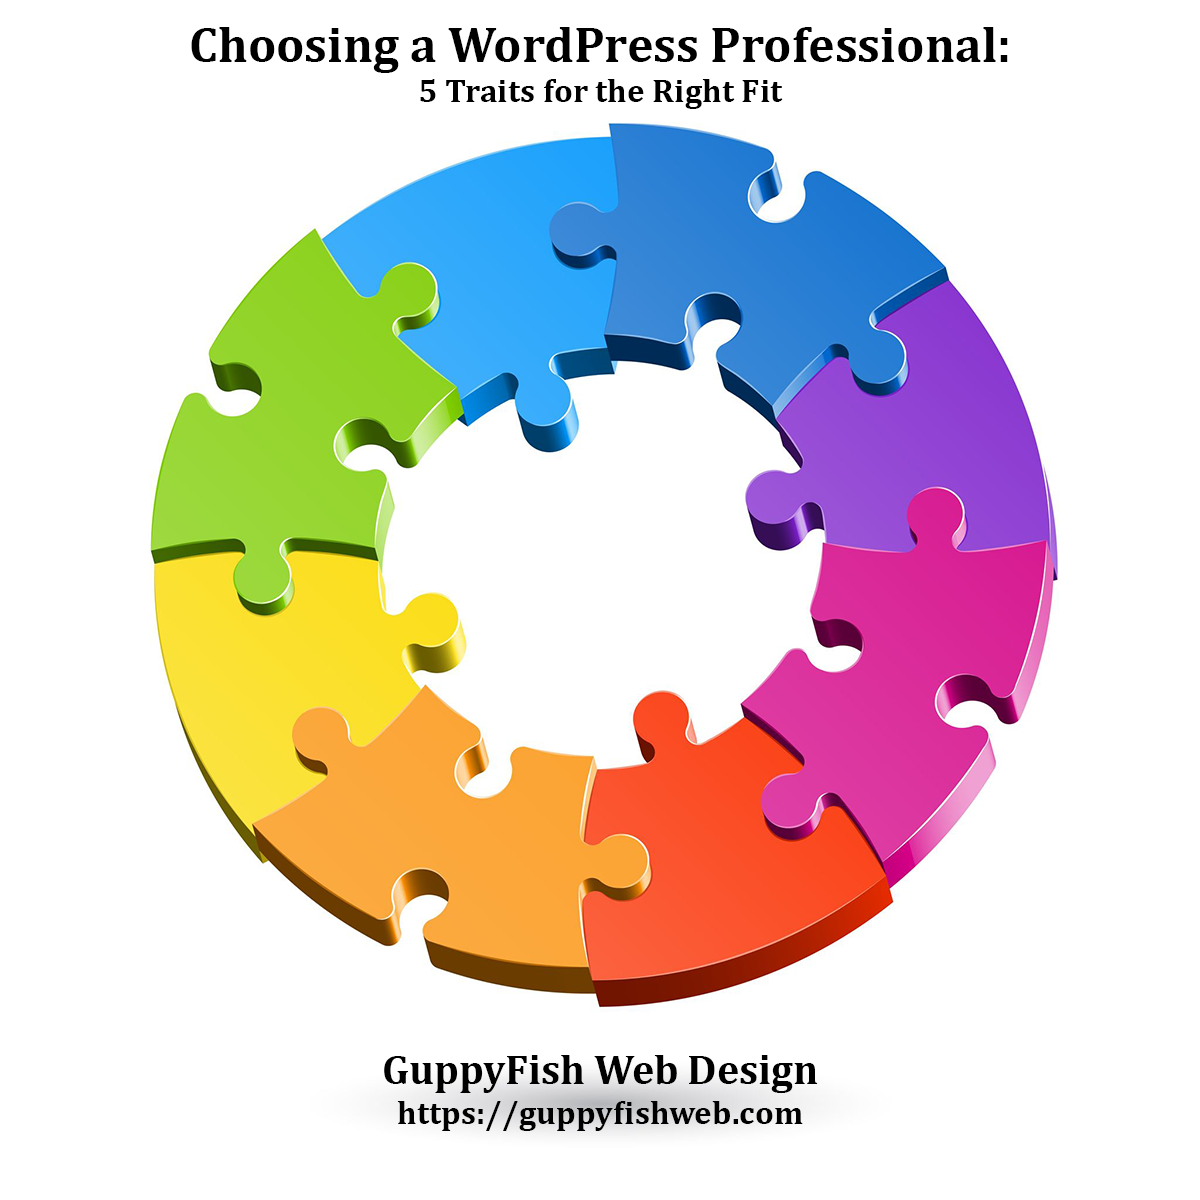 Choosing a WordPress Professional